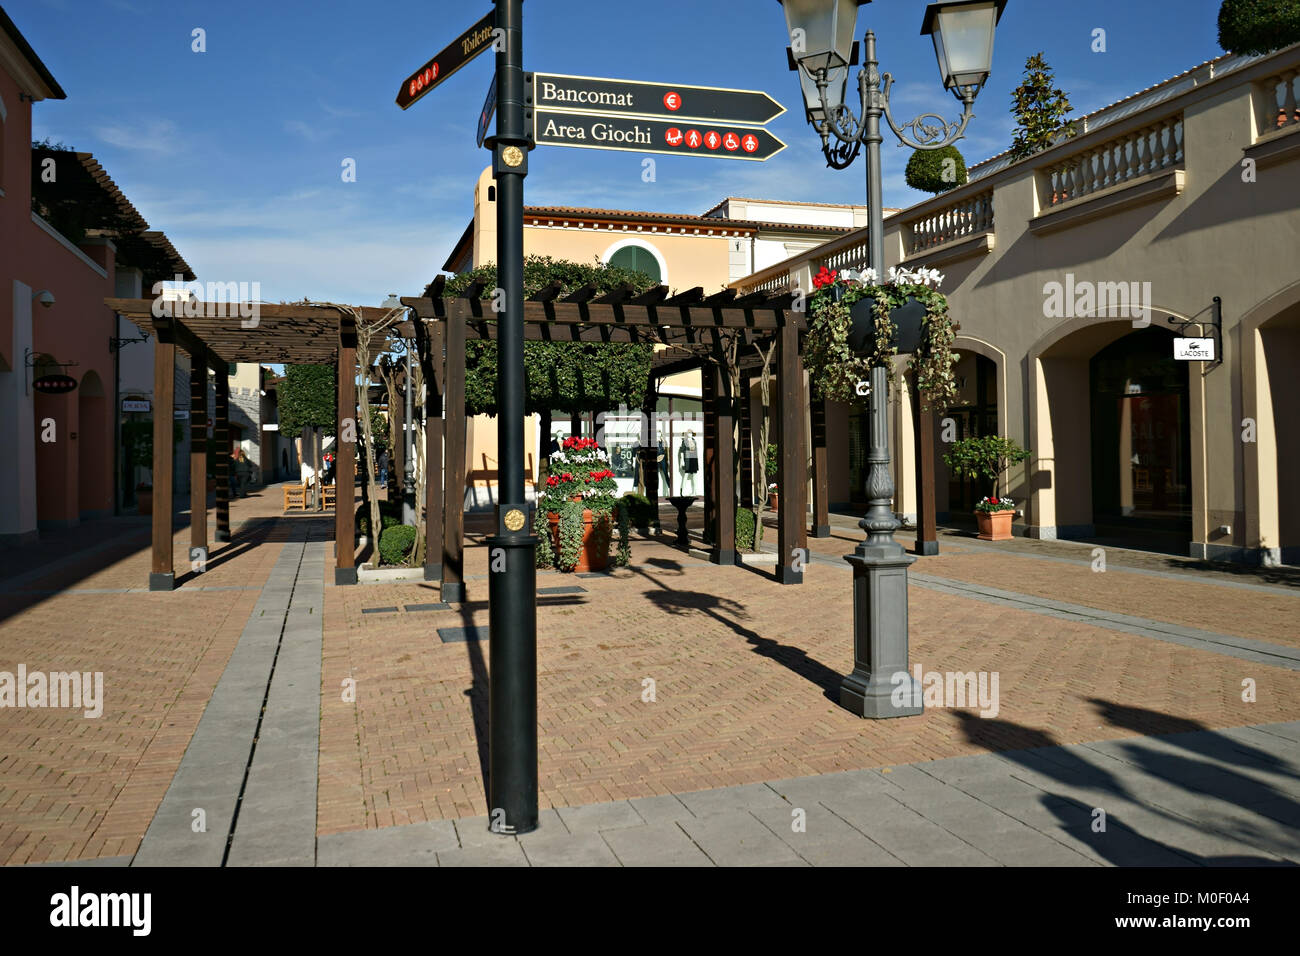 La Reggia Outlet - Mall - in Marcianise, Caserta, Italy Stock Photo ...